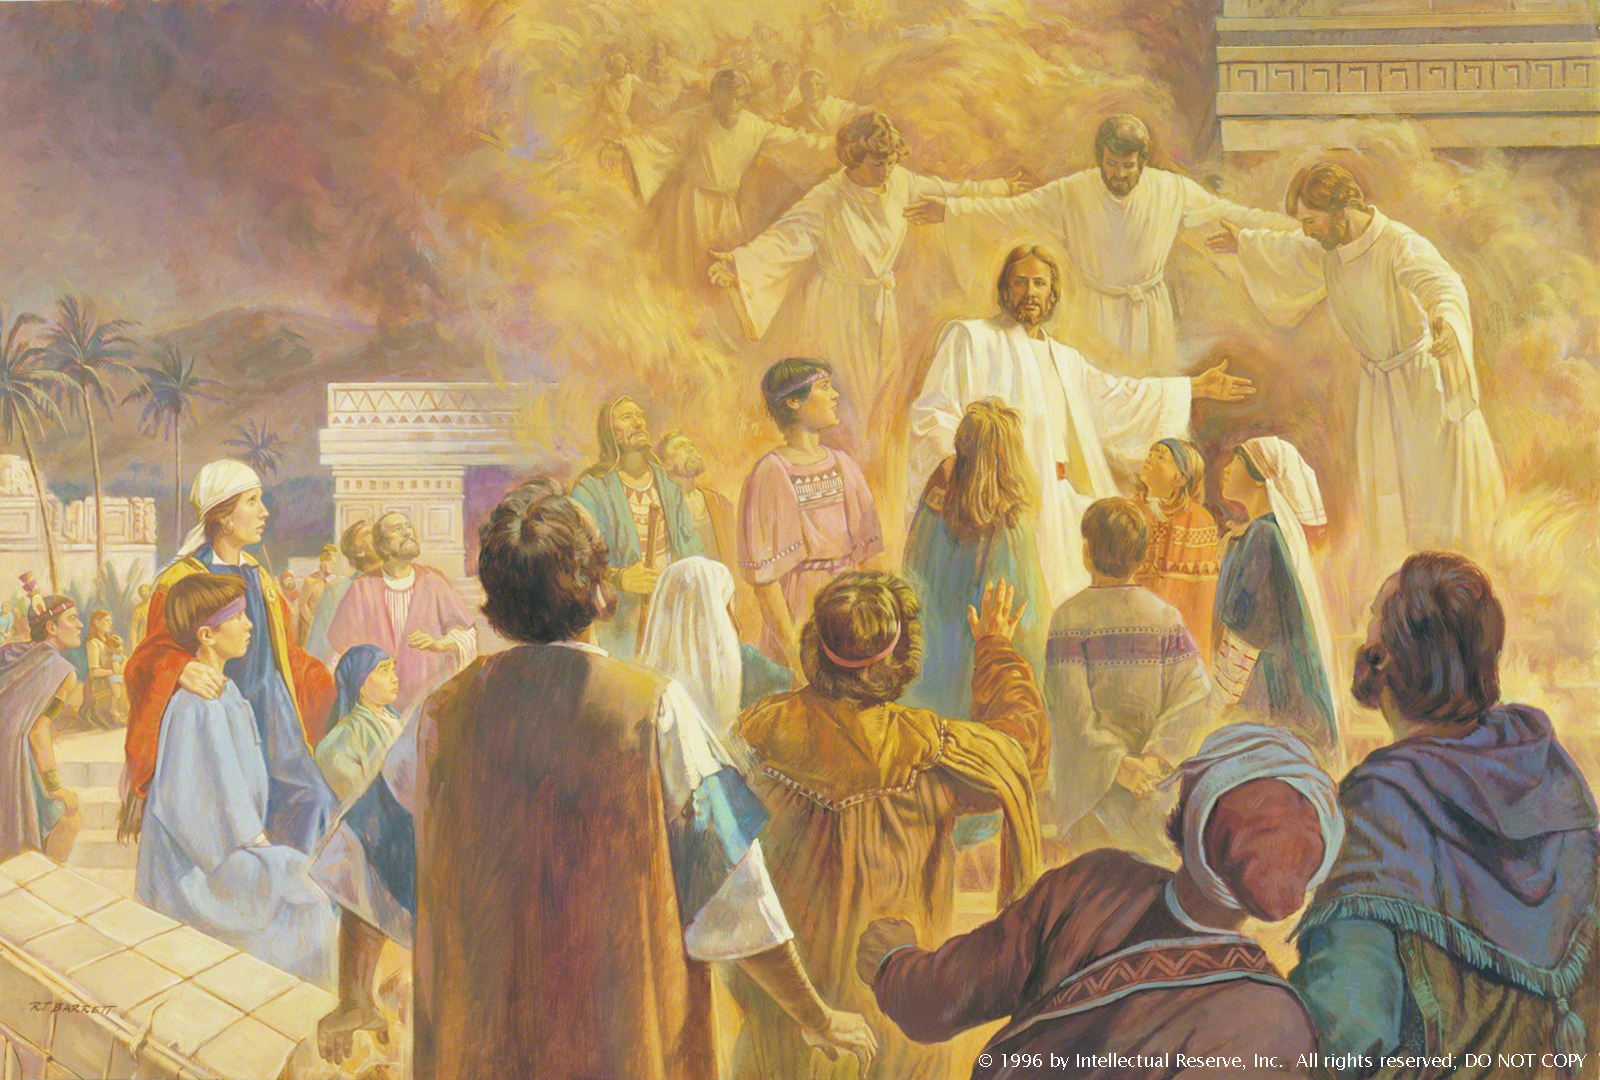 A row of angels in a cloud of warm light gather around Christ and a throng of children who are standing among rubble in the Americas.